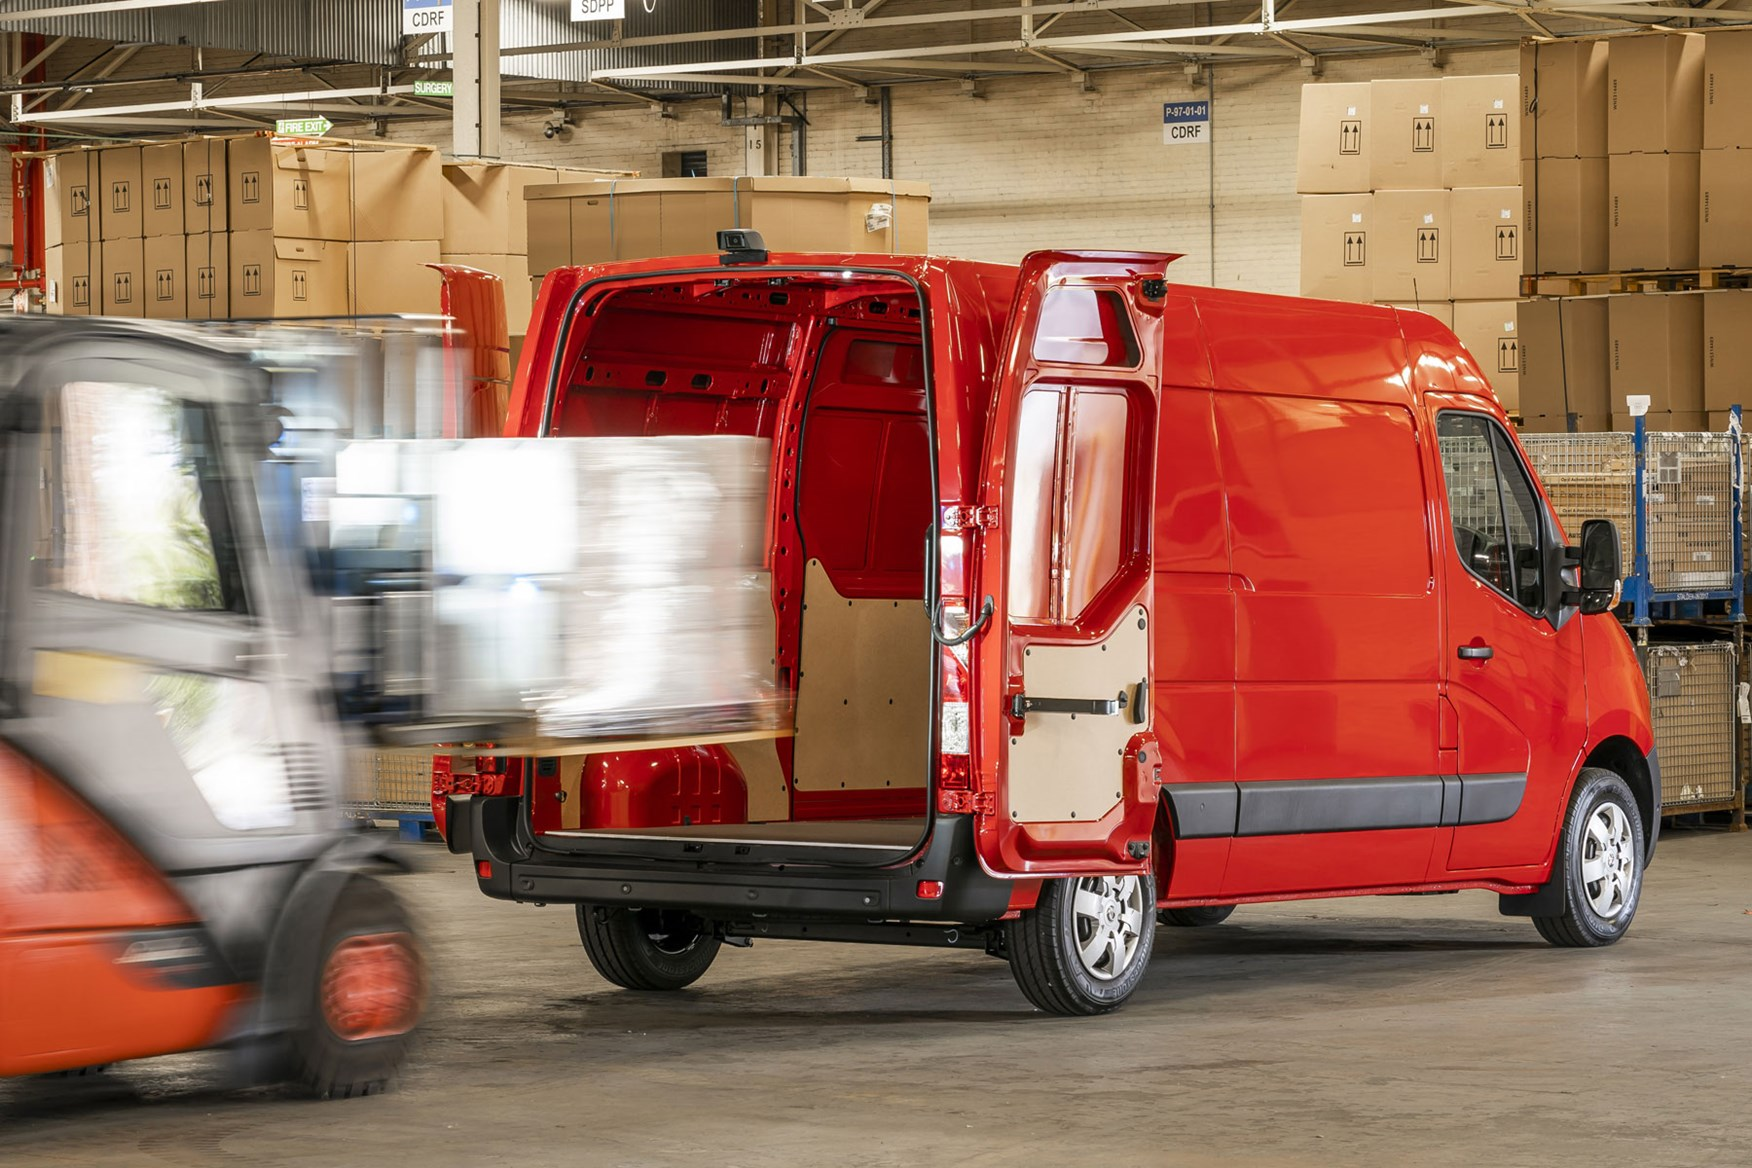 Vauxhall Movano - 2020 model year, being loaded though rear doors by forklift truck, 2019